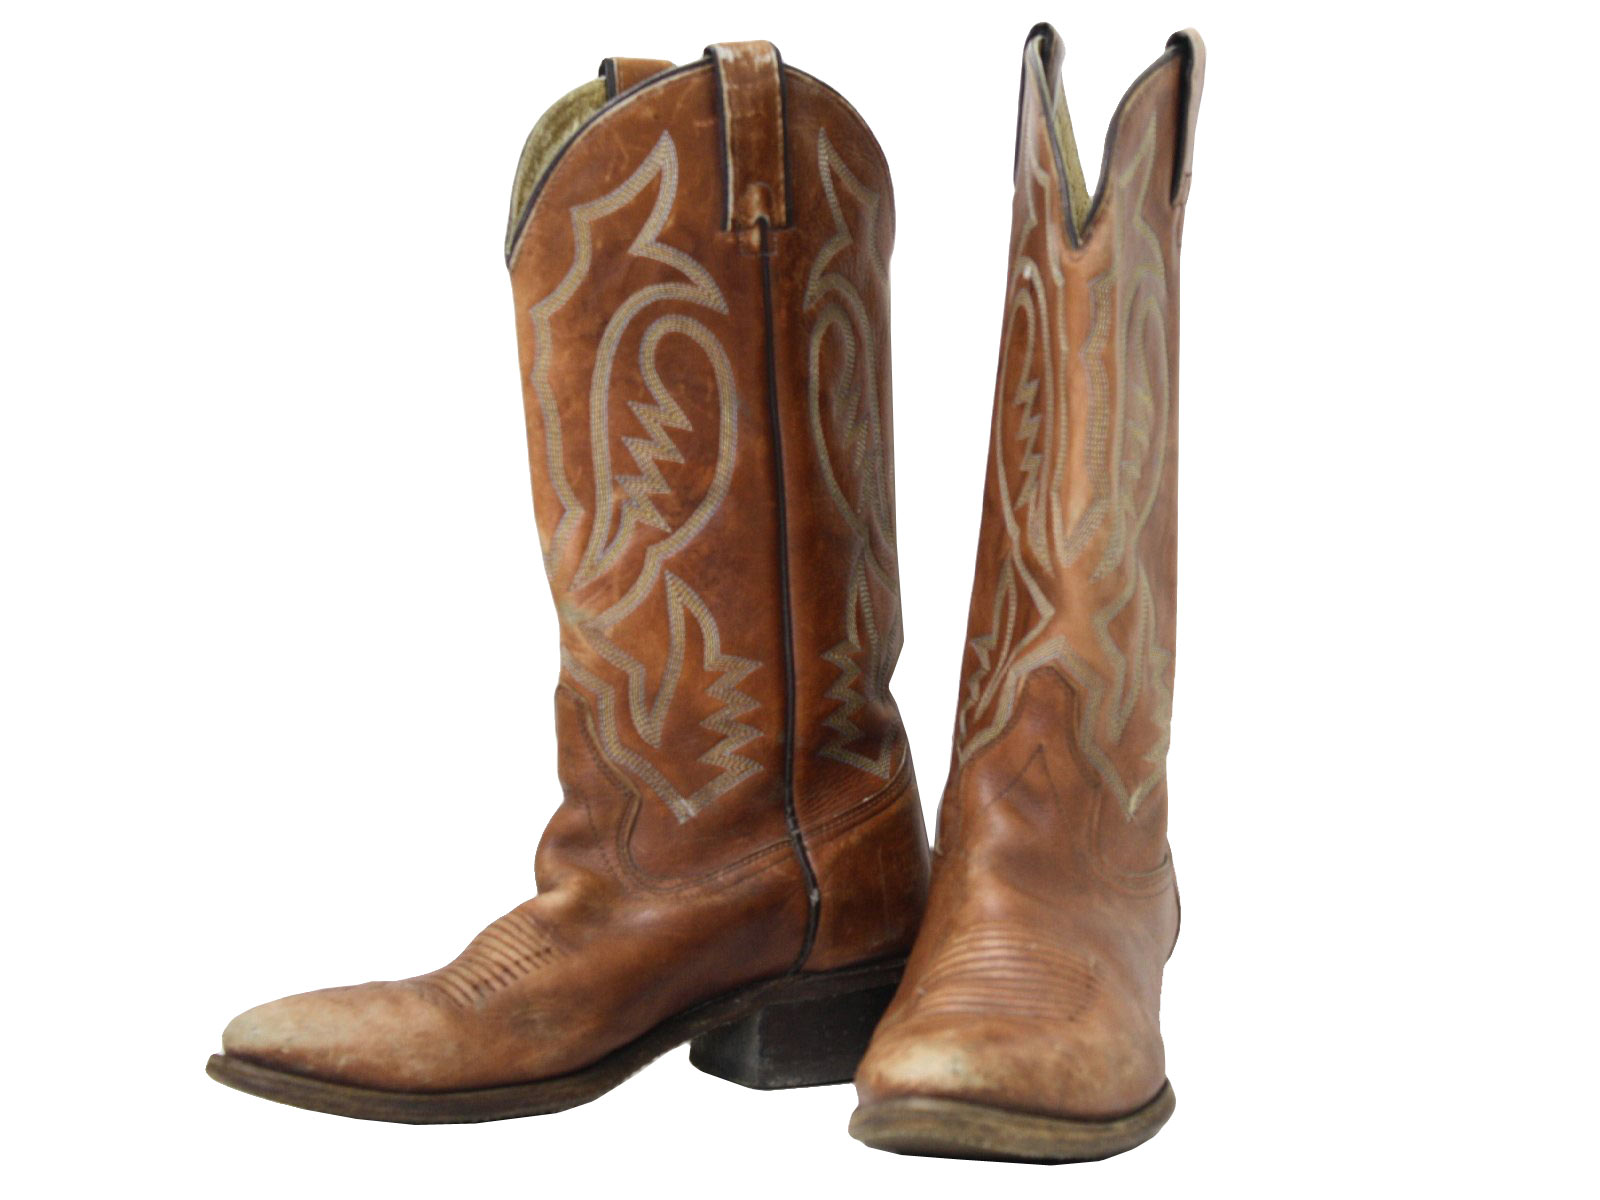 Where To Buy Cowgirl Boots Calmh7bj